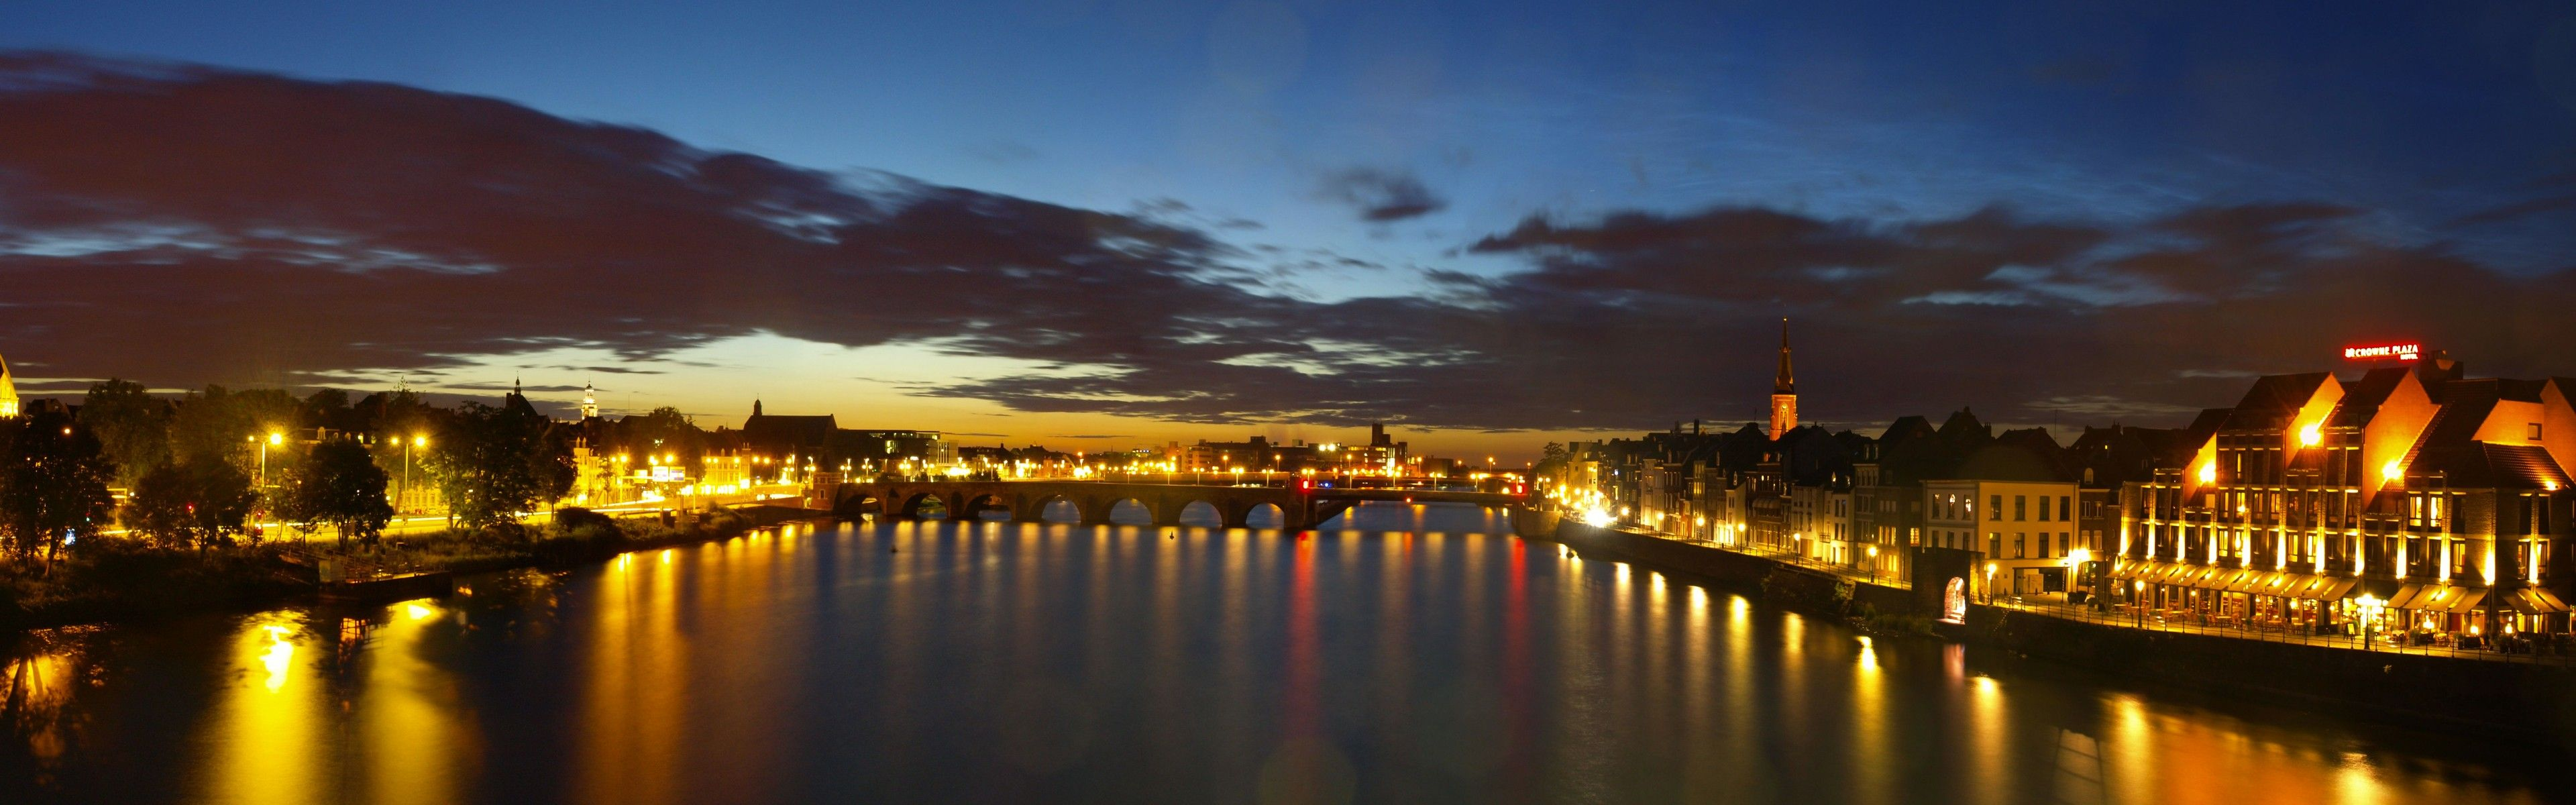 City Holland Hotel Maastricht Netherlands Bridges Cities Night 3840x1200